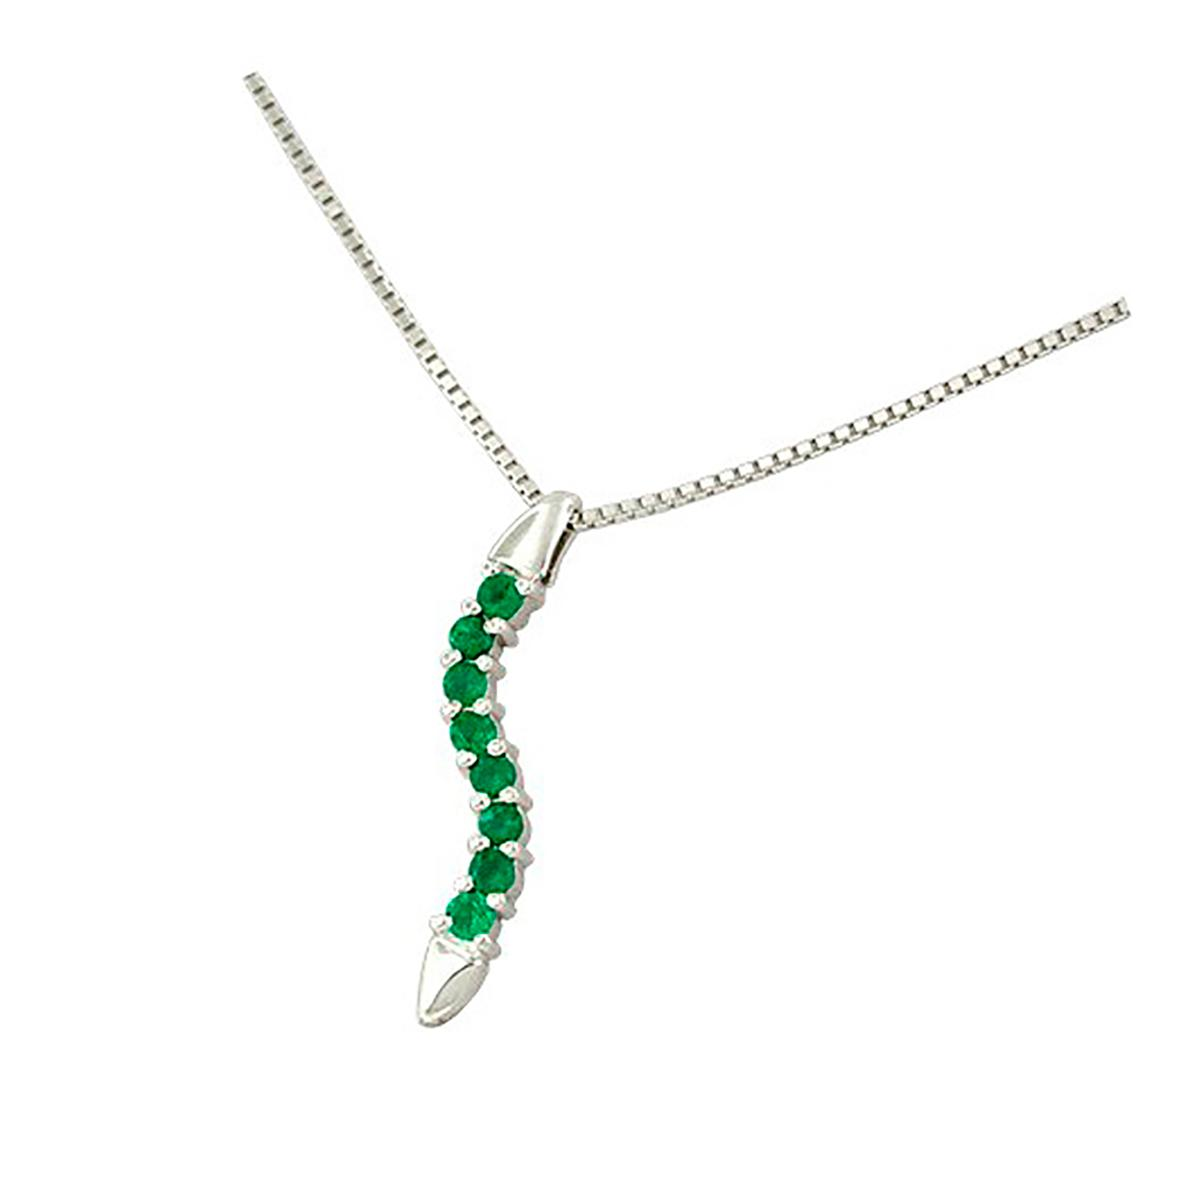 18k-white-gold-emerald-necklace-with-8-round-emeralds